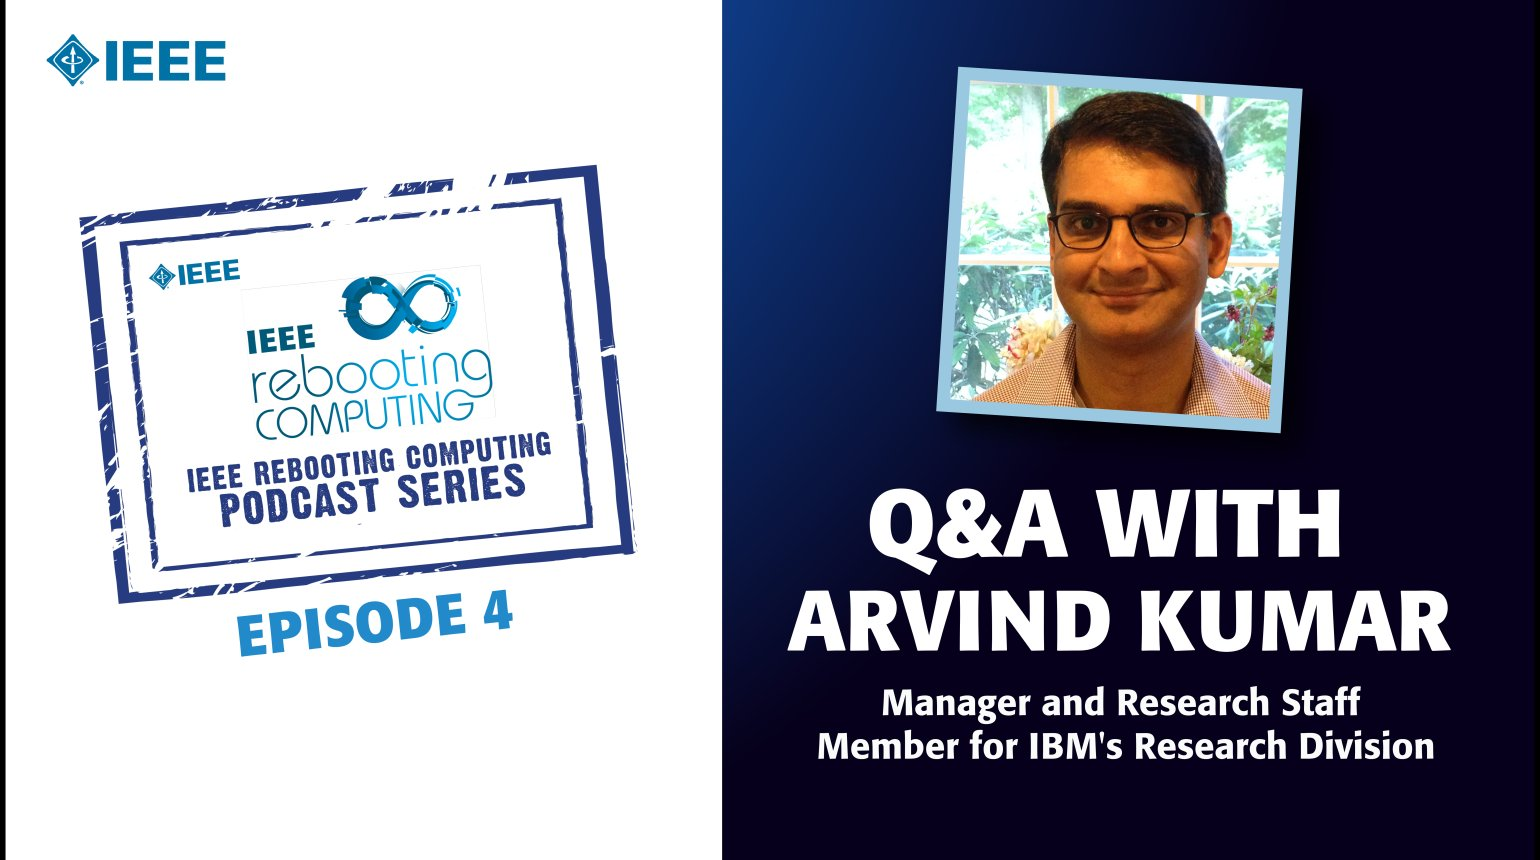 Q&A with Arvind Kumar: IEEE Rebooting Computing Podcast, Episode 4